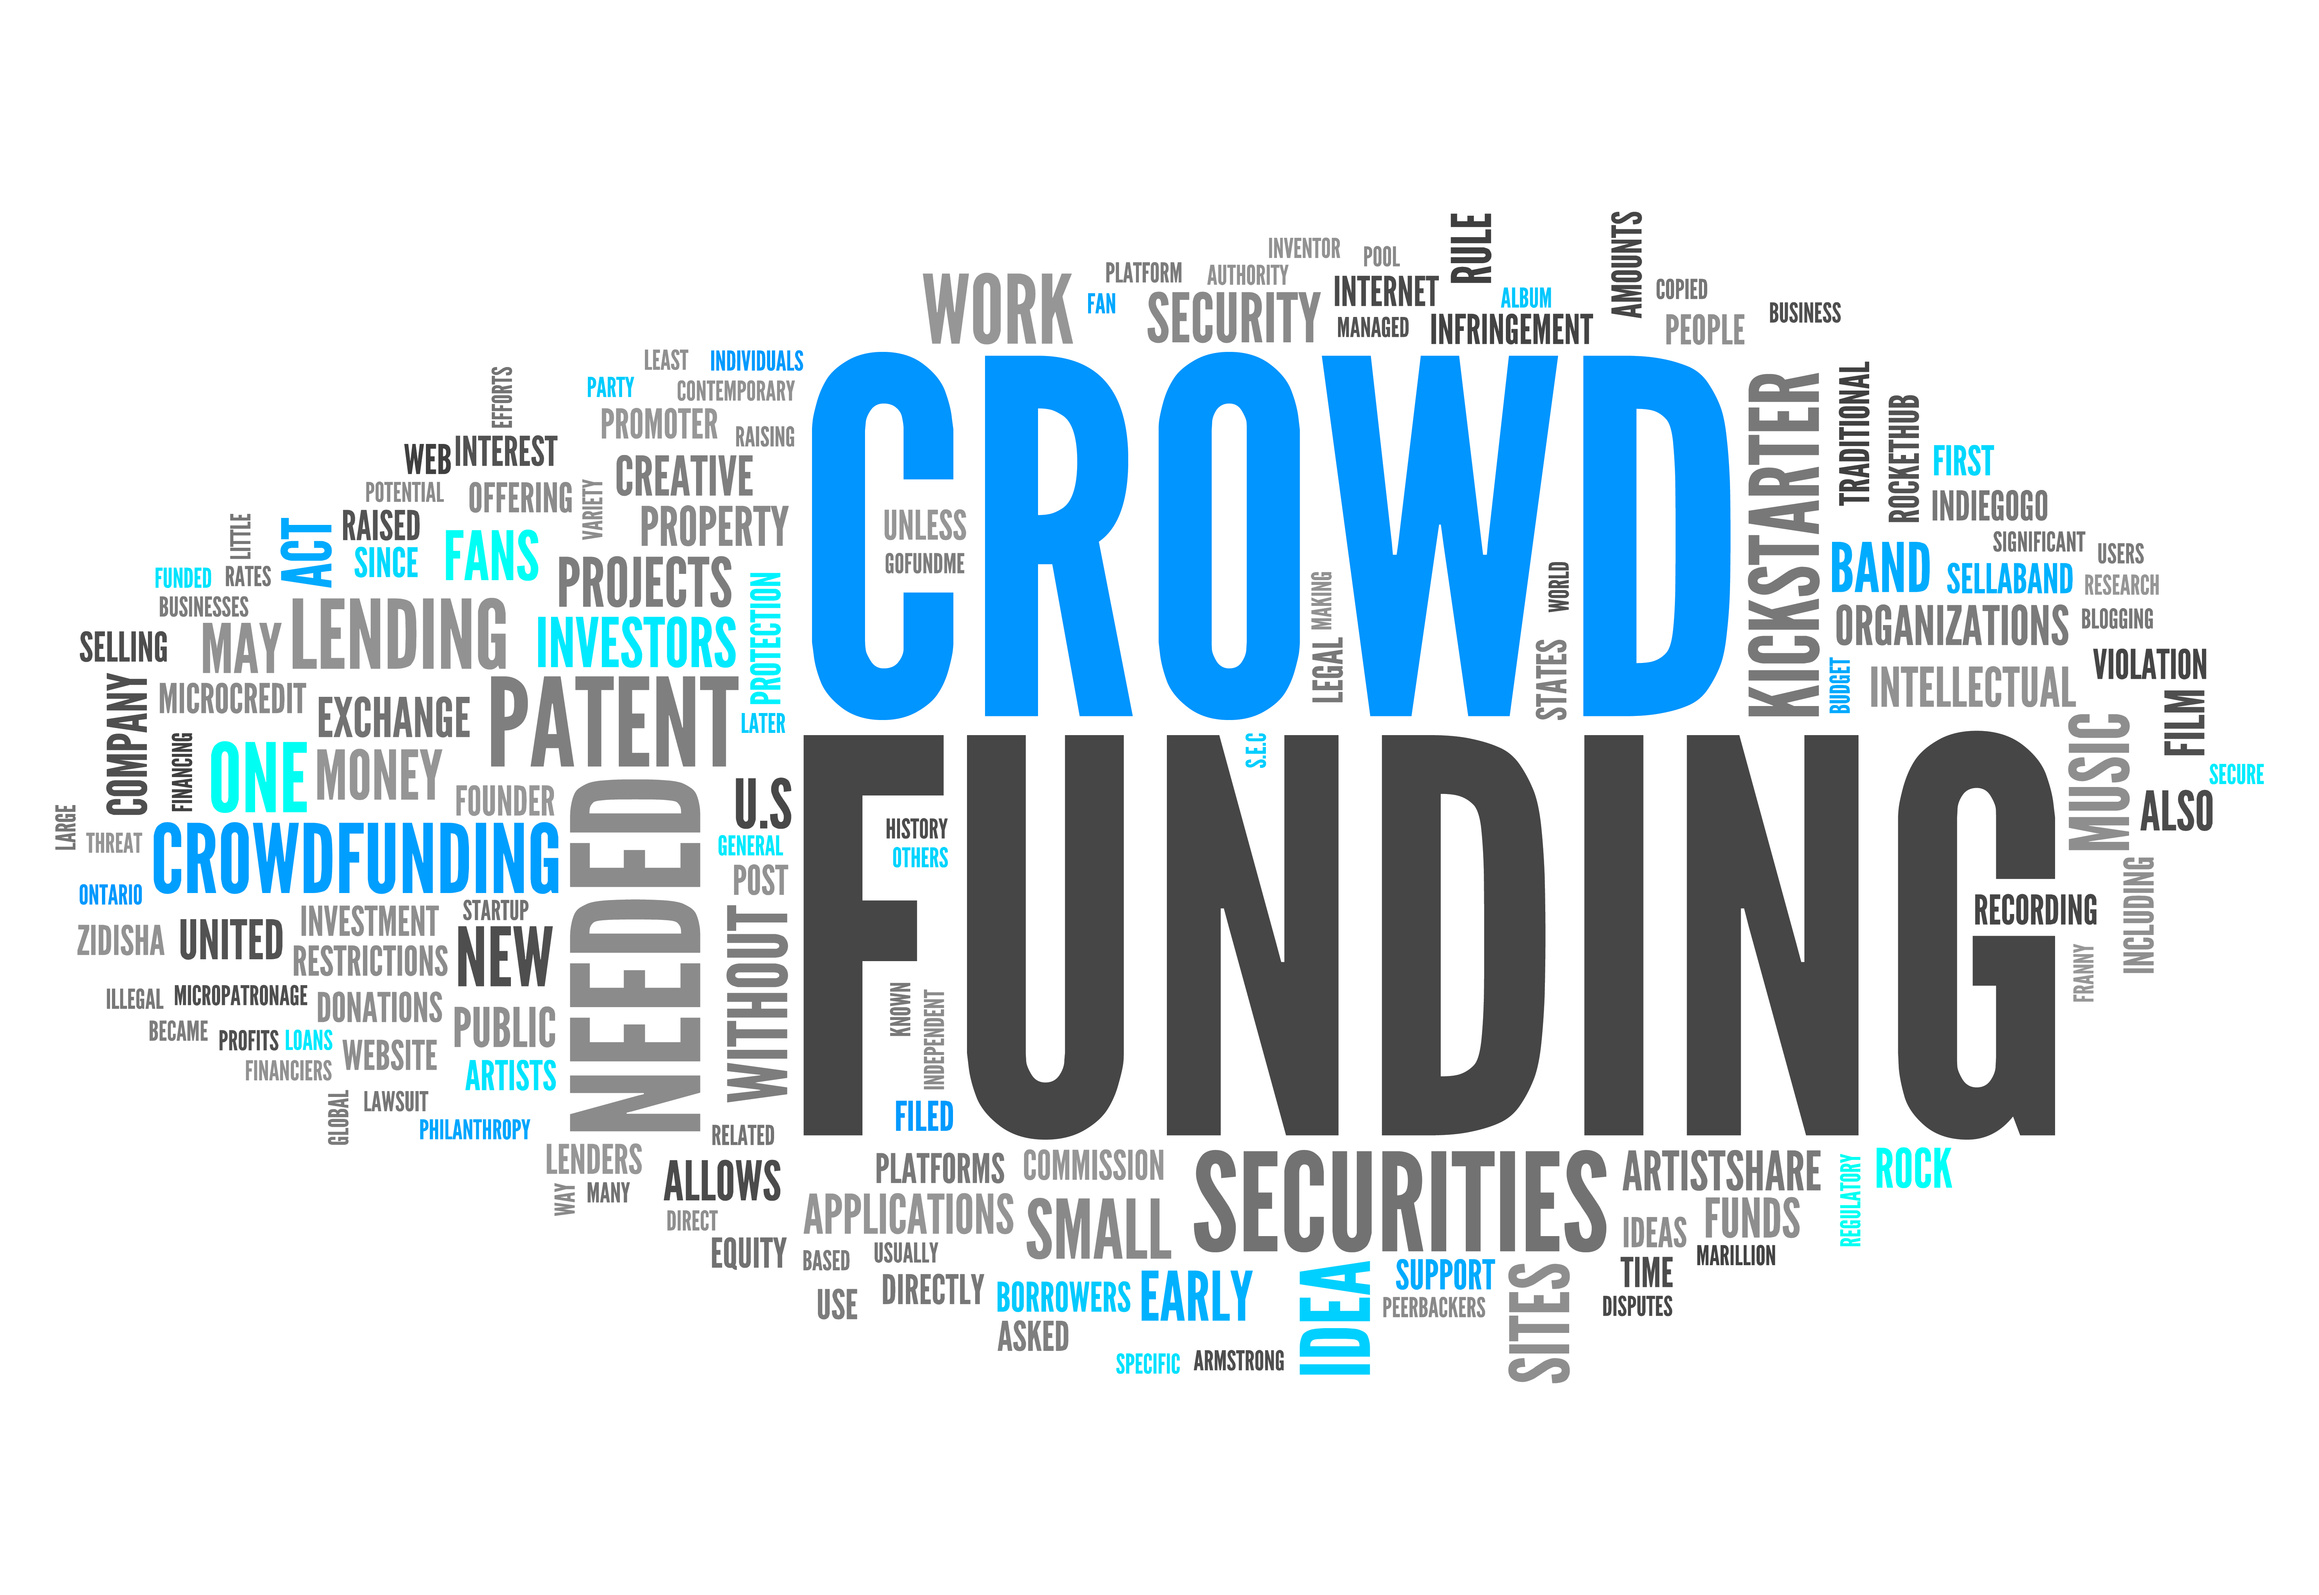 Top 10 crowdfunding sites for charities